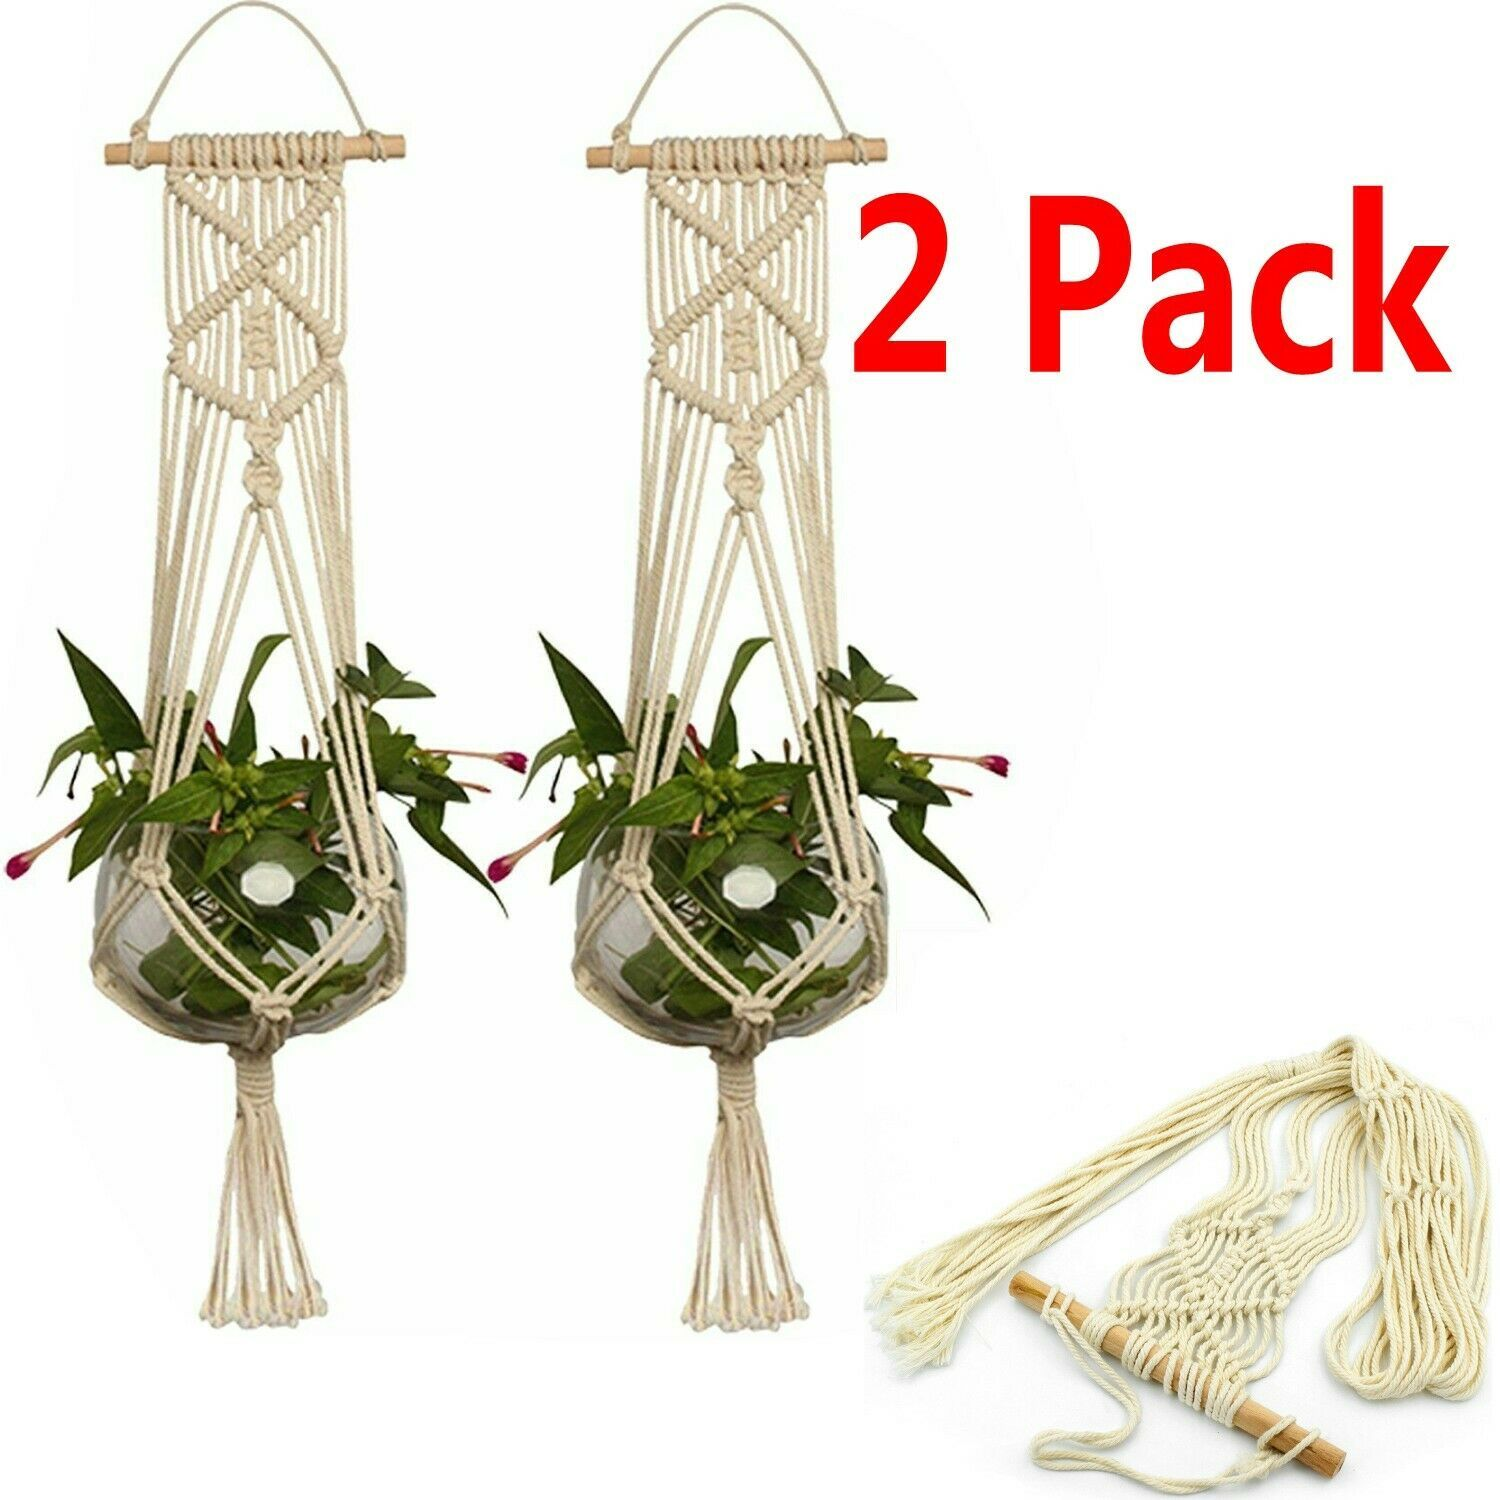 2 Pack Plant Hanger Flower Pot Plant Holder Large 4 Legs Macrame Jute 36 Inch Plant Holder Ideas Of Plant Holder Plantho Plant Holders Plant Hanger Plants